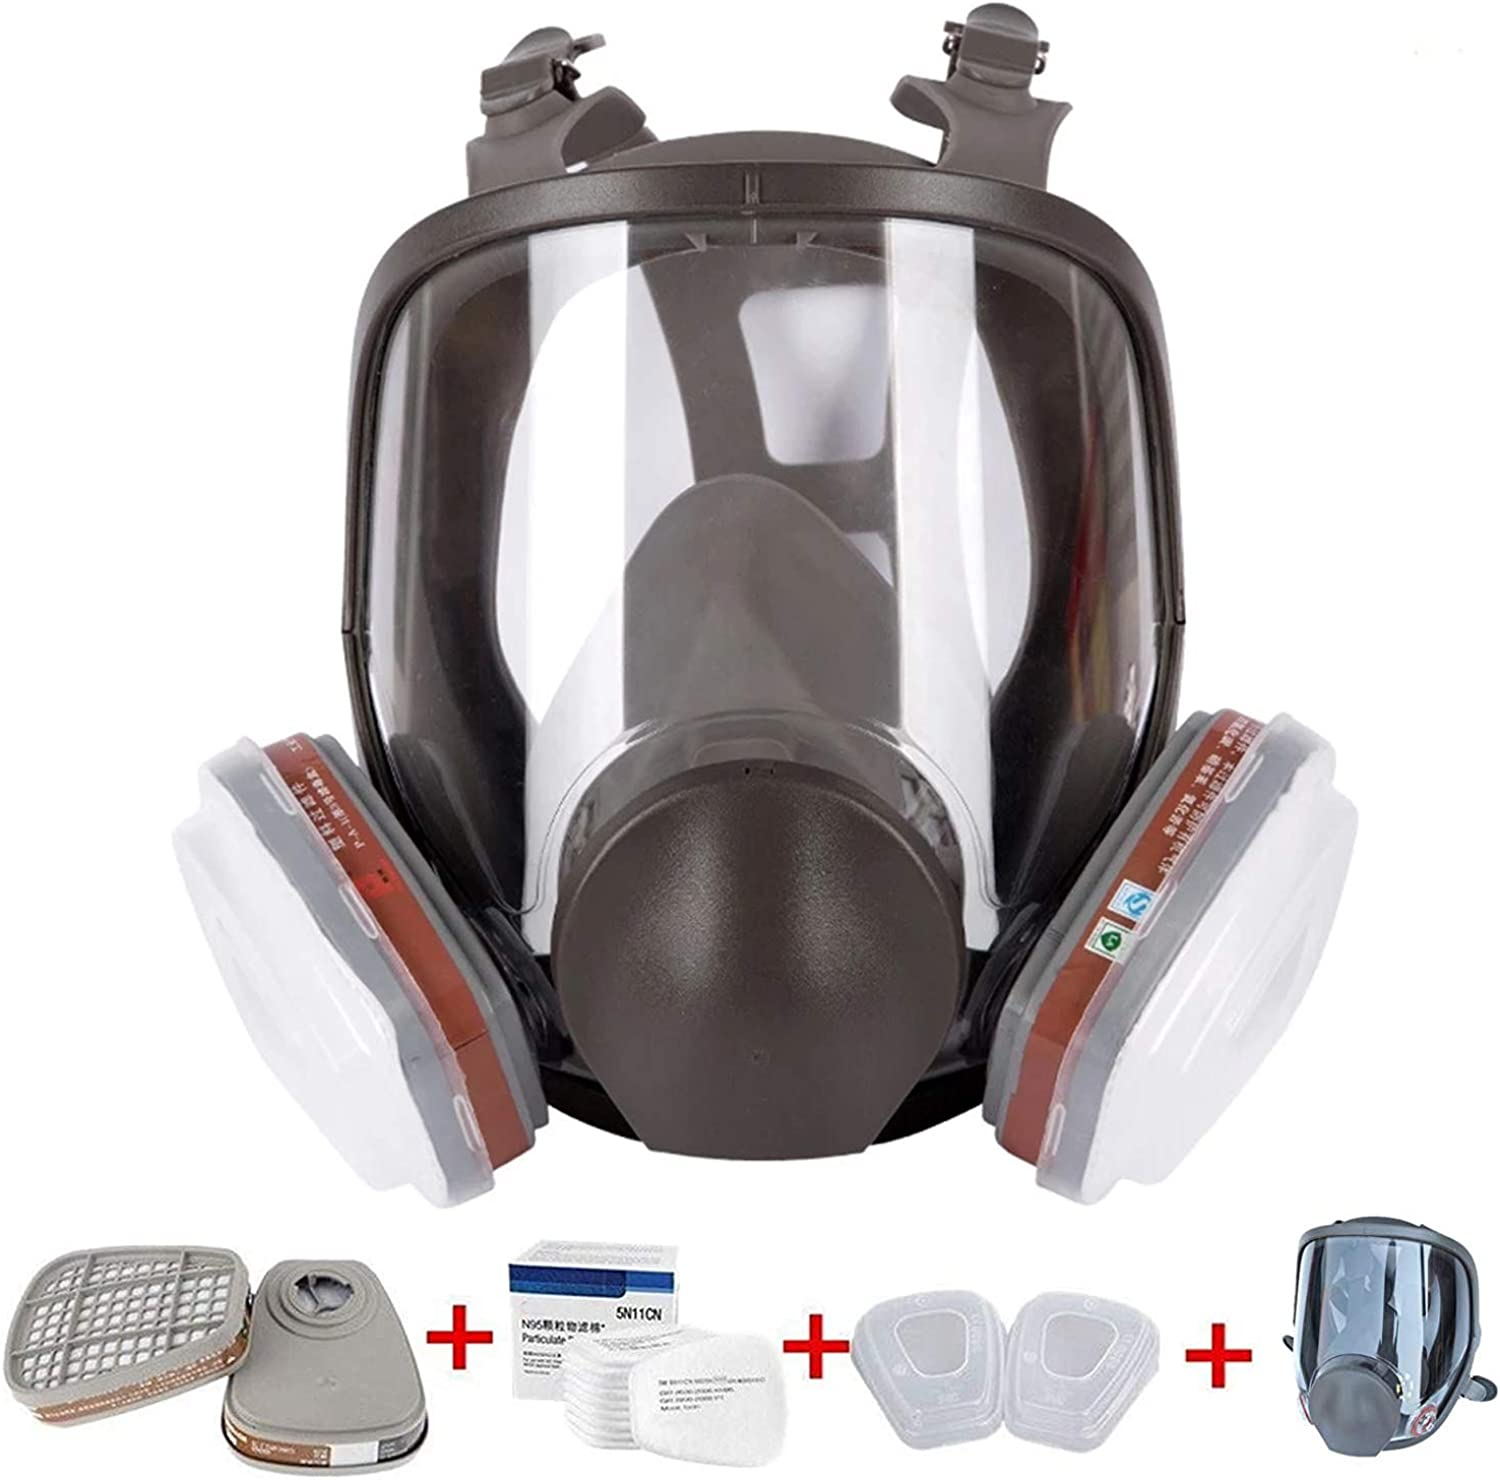 15in1 Full Face Max 44% OFF Respirator Reusable Wide View Popular shop is the lowest price challenge of Field